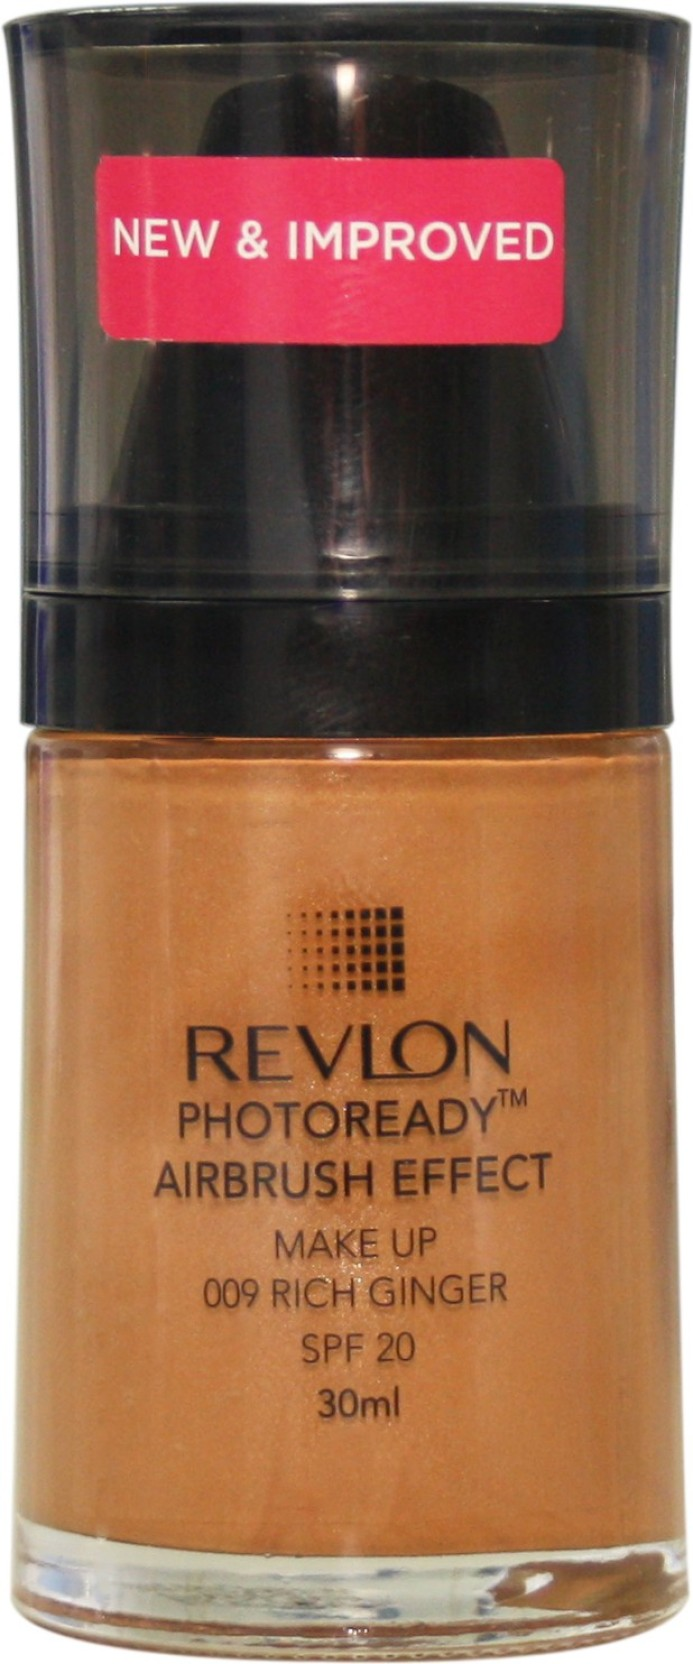 Revlon Photo Ready Air Brush Effect Make Up Spf 20 Rich Ginger Photoready Airbrush Makeup Nude Foundation Home